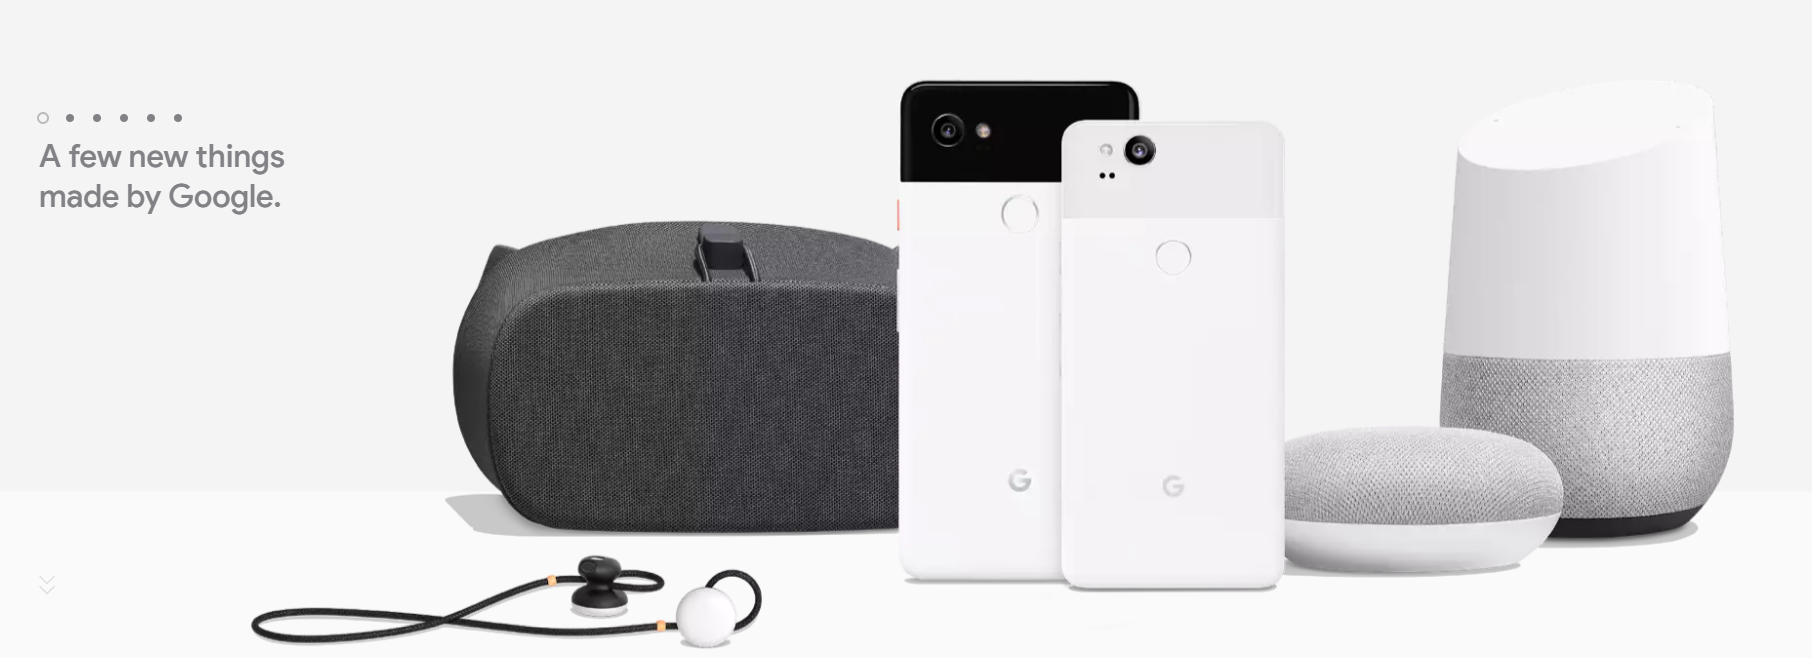 New Google products